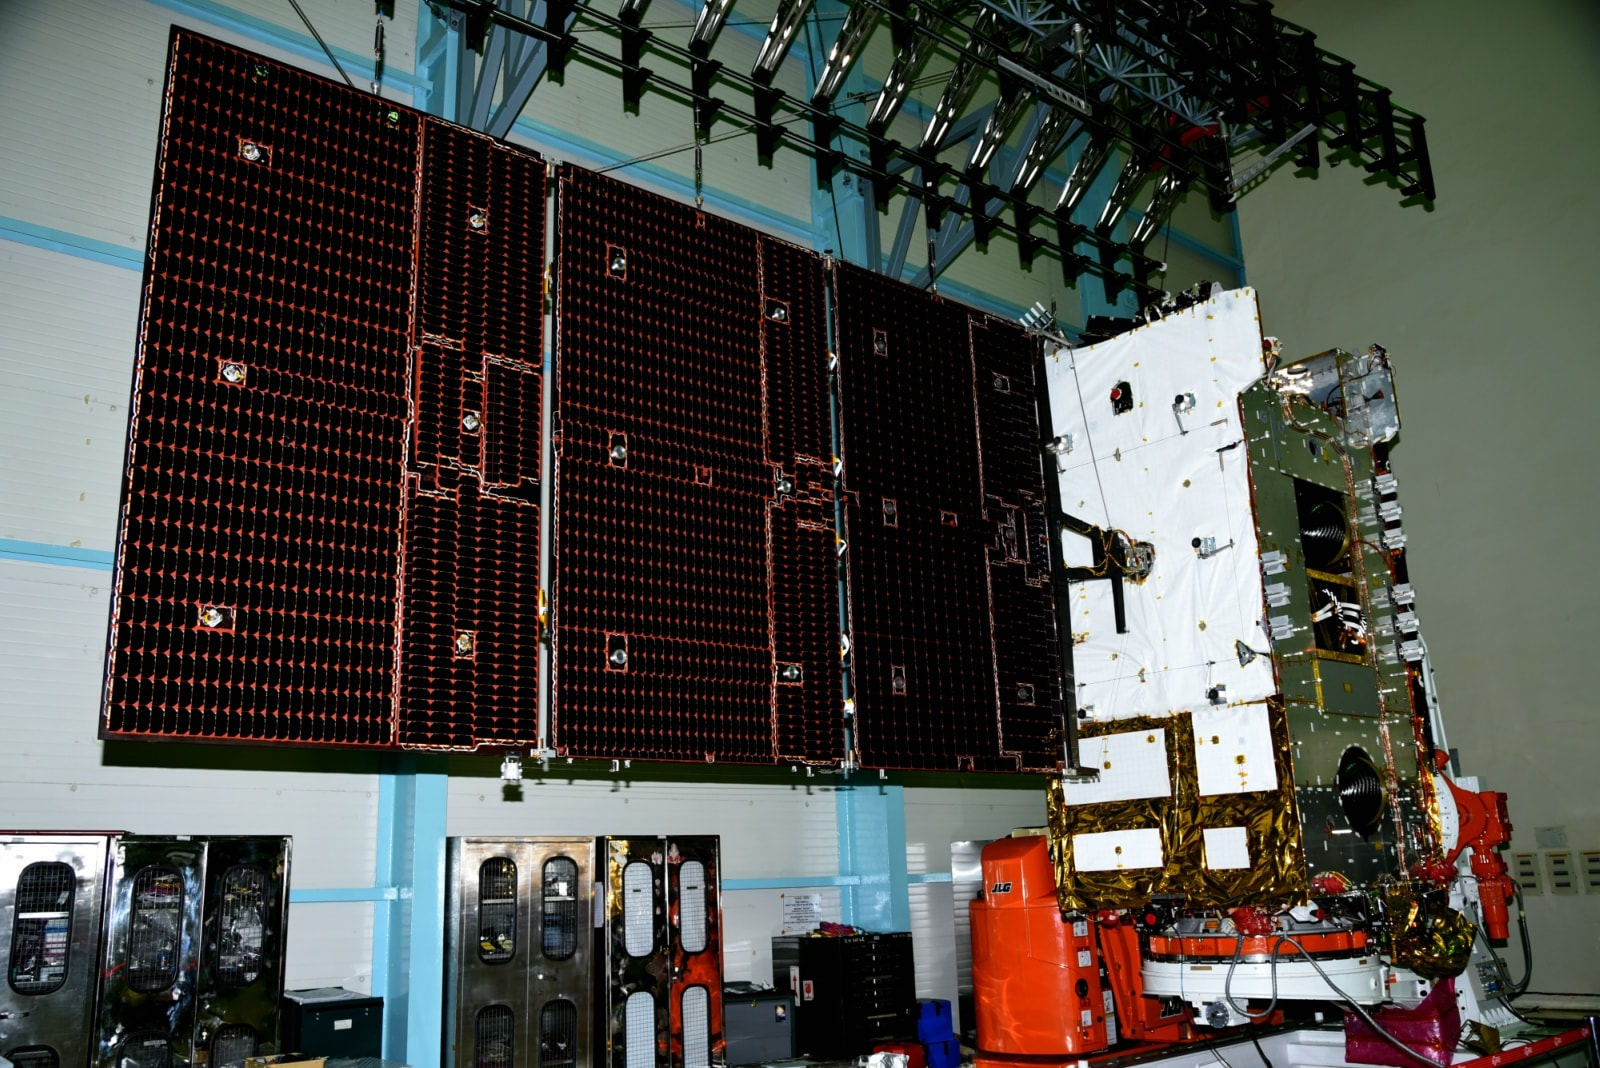 IsraAl said that GSAT-31 was the 23rd ISRO satellite orbited by Arianespace and Ariane-series launchers, tracing the relationship back to India's APPLE small experimental communications spacecraft, lofted in 1981 by an Ariane 1 version.